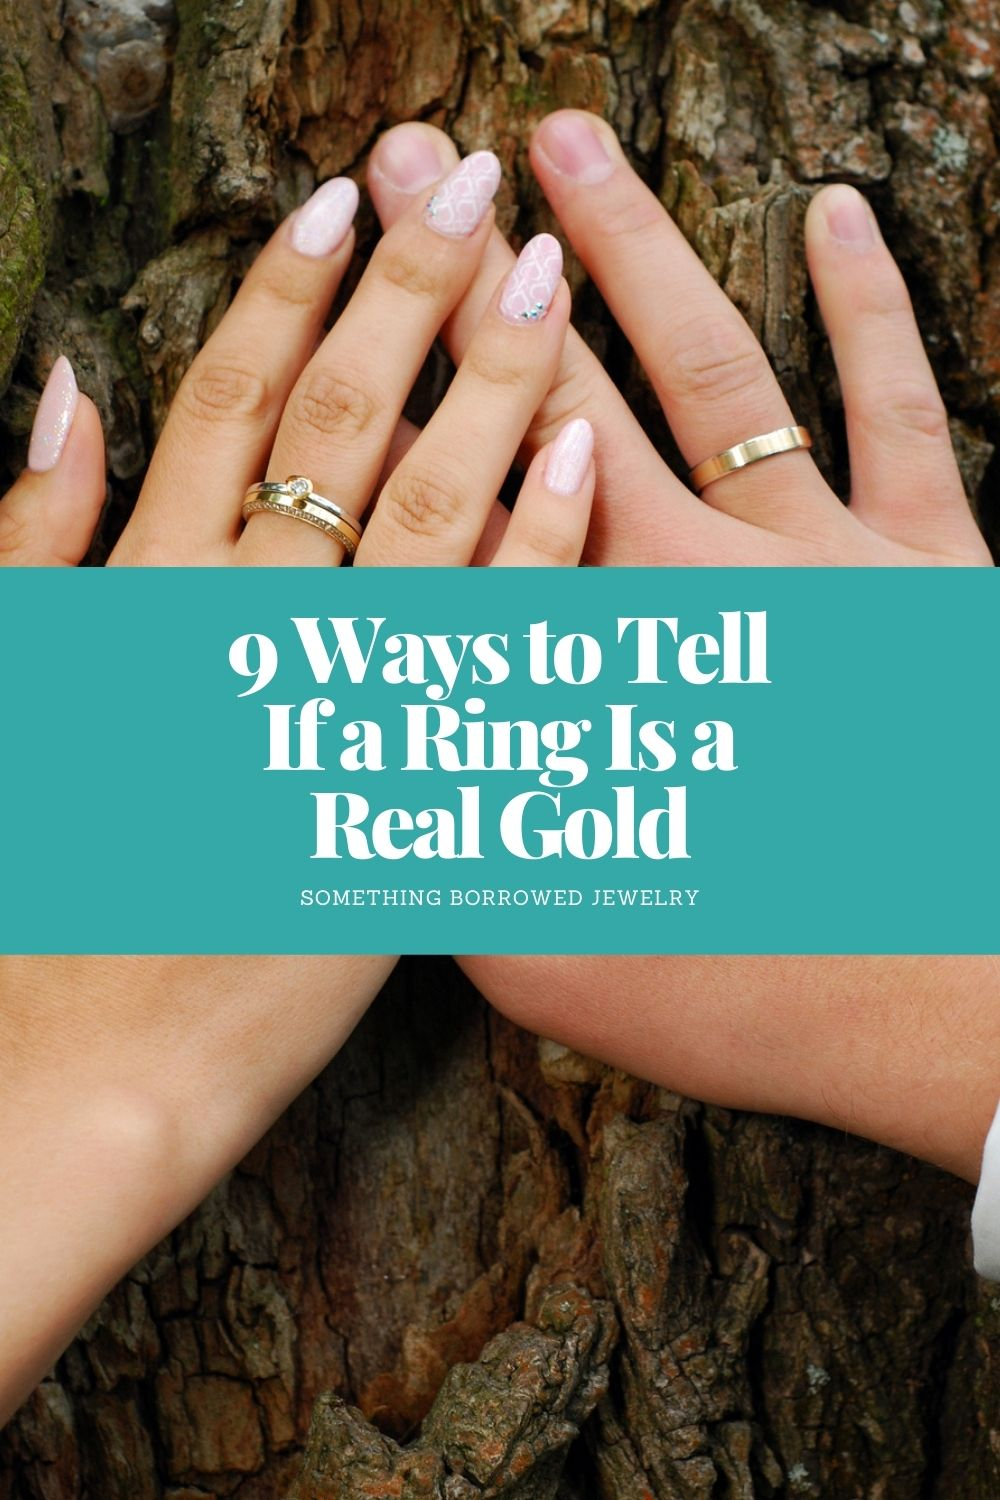 9 Ways to Tell If a Ring Is a Real Gold pin